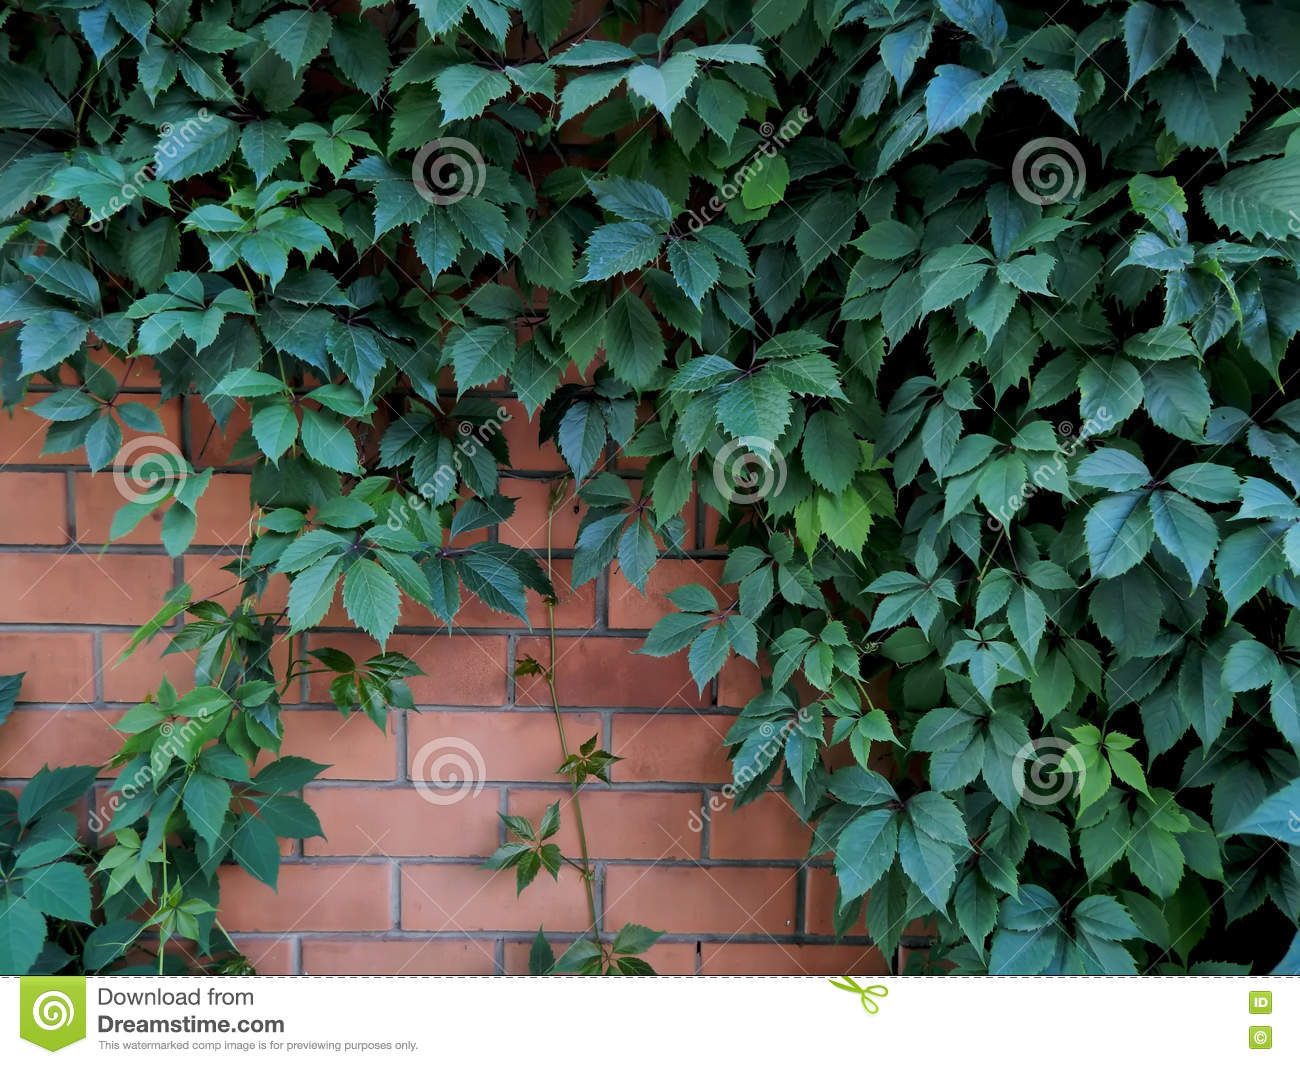 Decorative Hops Growing On A Brick Wall Garden Stock Image - Image ...